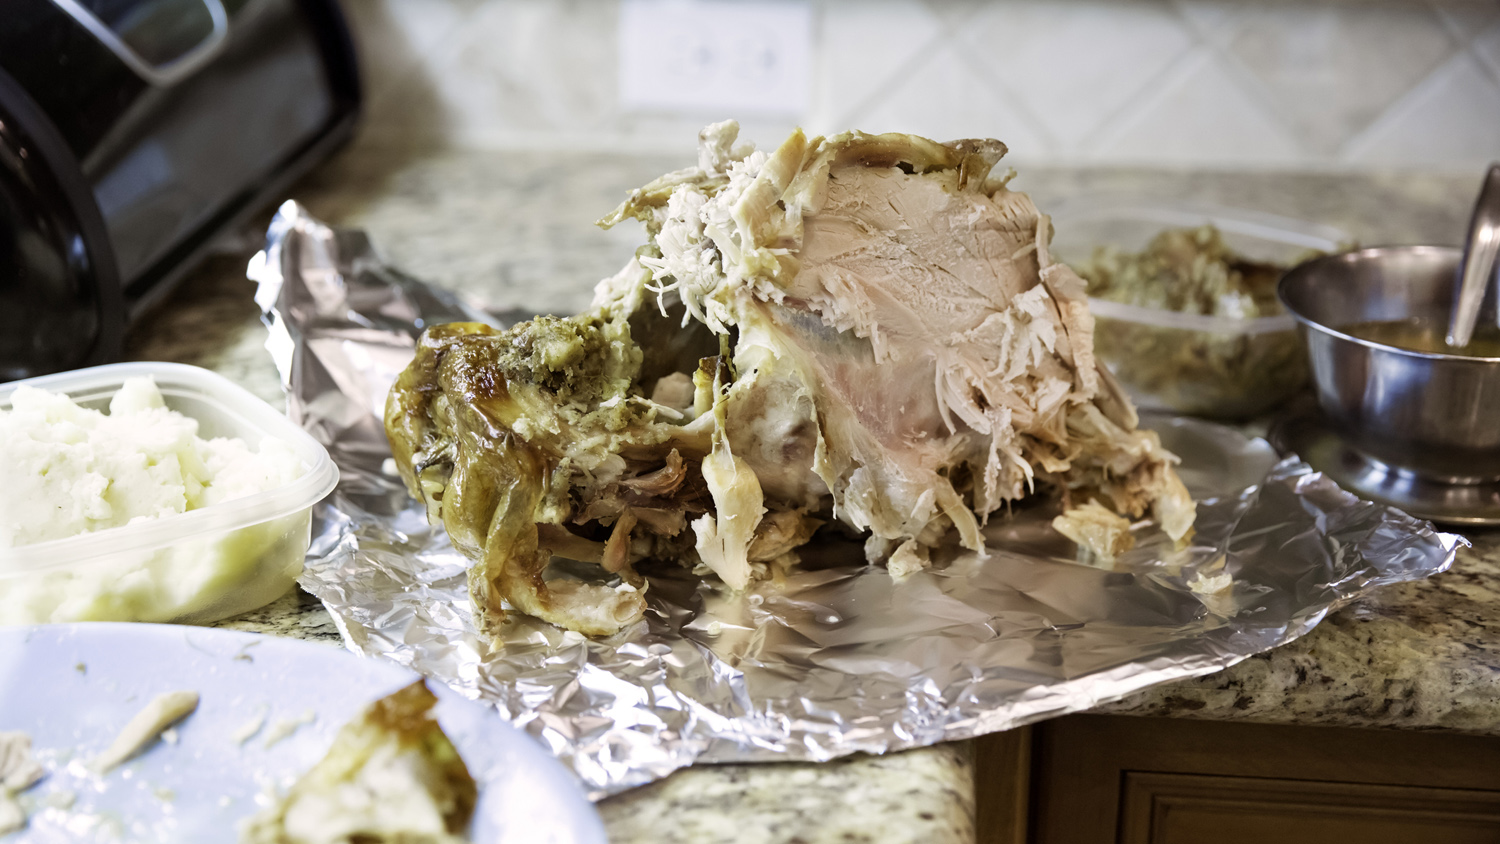 Leftover sliced turkey on a sheet of aluminum foil on the kitchen counter after a big holiday dinner.